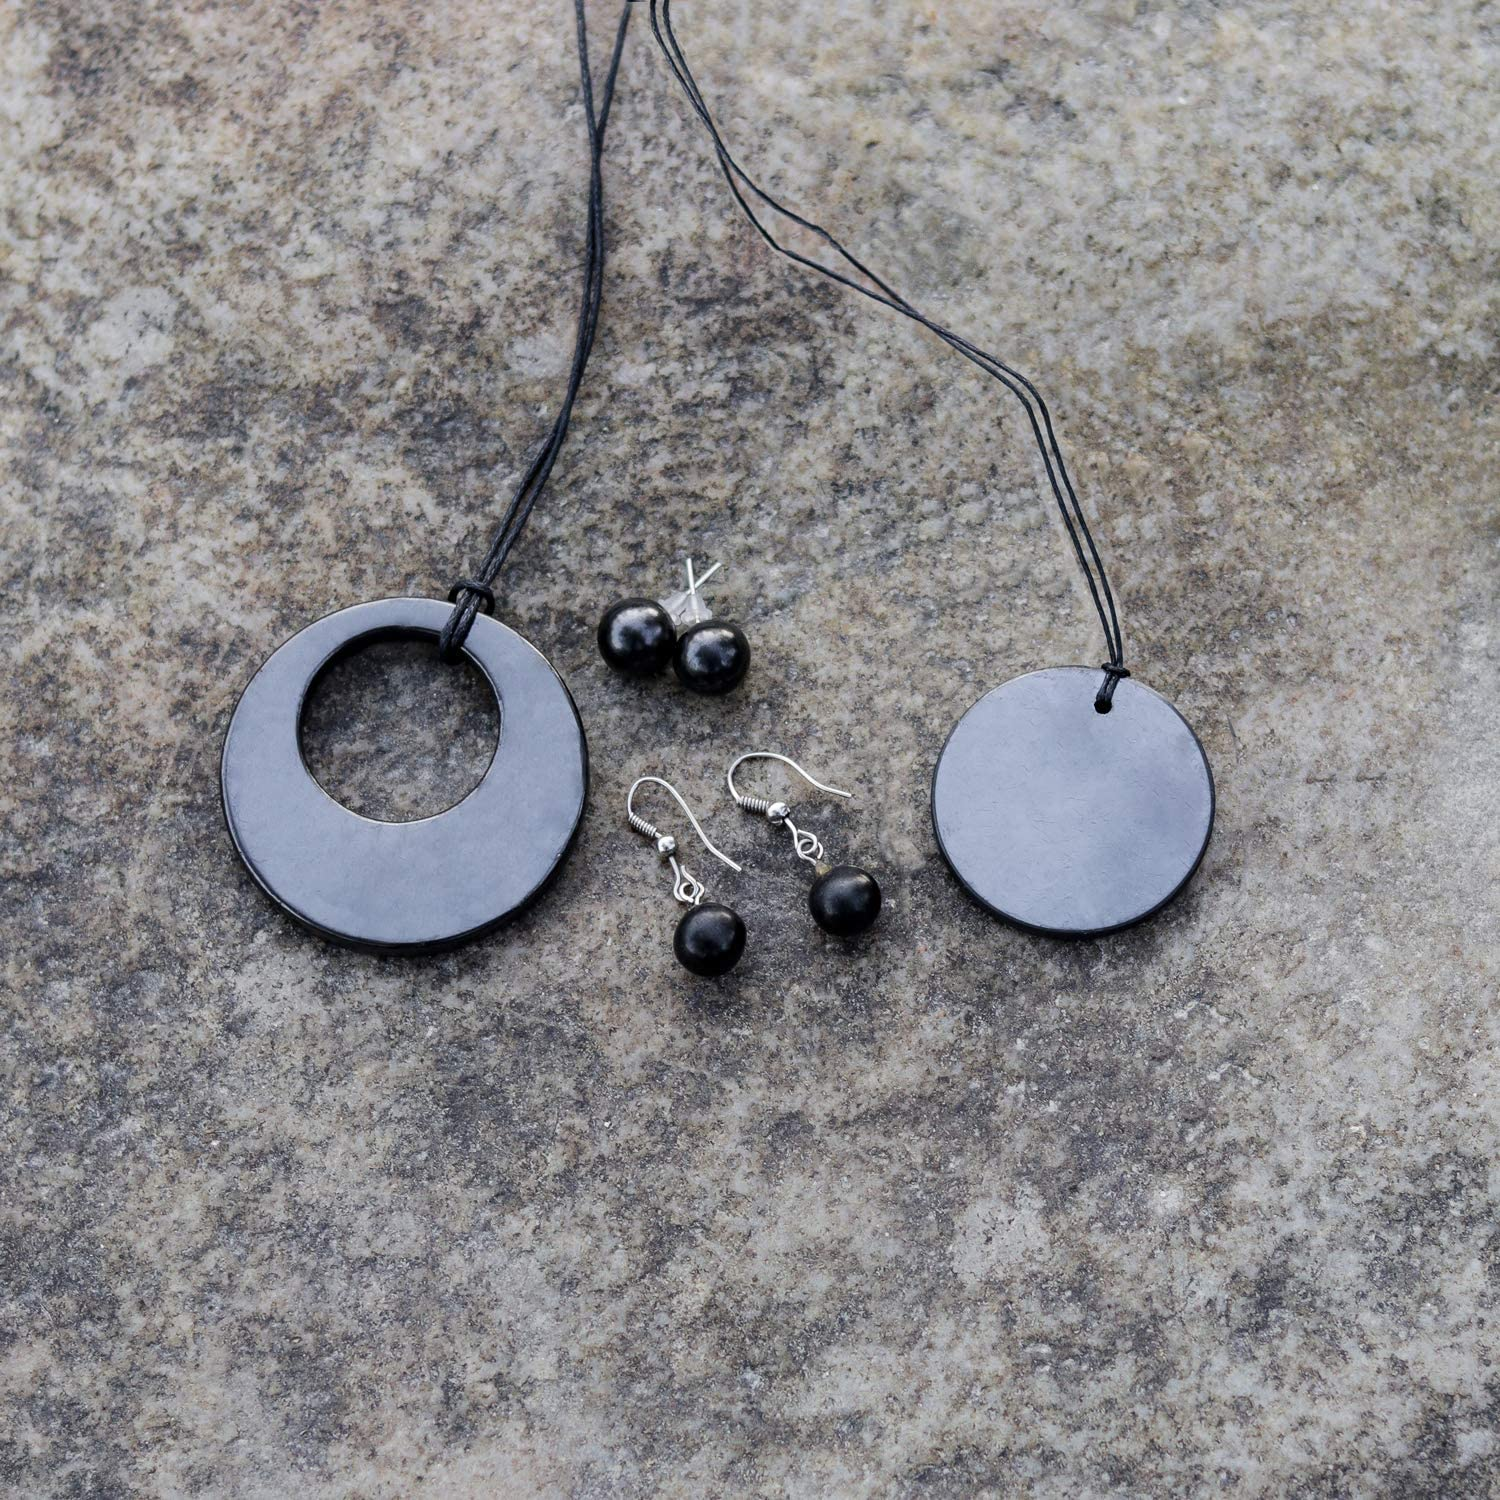 This Trendy Jewelry Gift Set Contains Earrings Studs Shungite Jewelry Set for EMF Protection Made of Shungite Stones Small Sphere Earrings Small Circle Pendant Double Circle Pendant